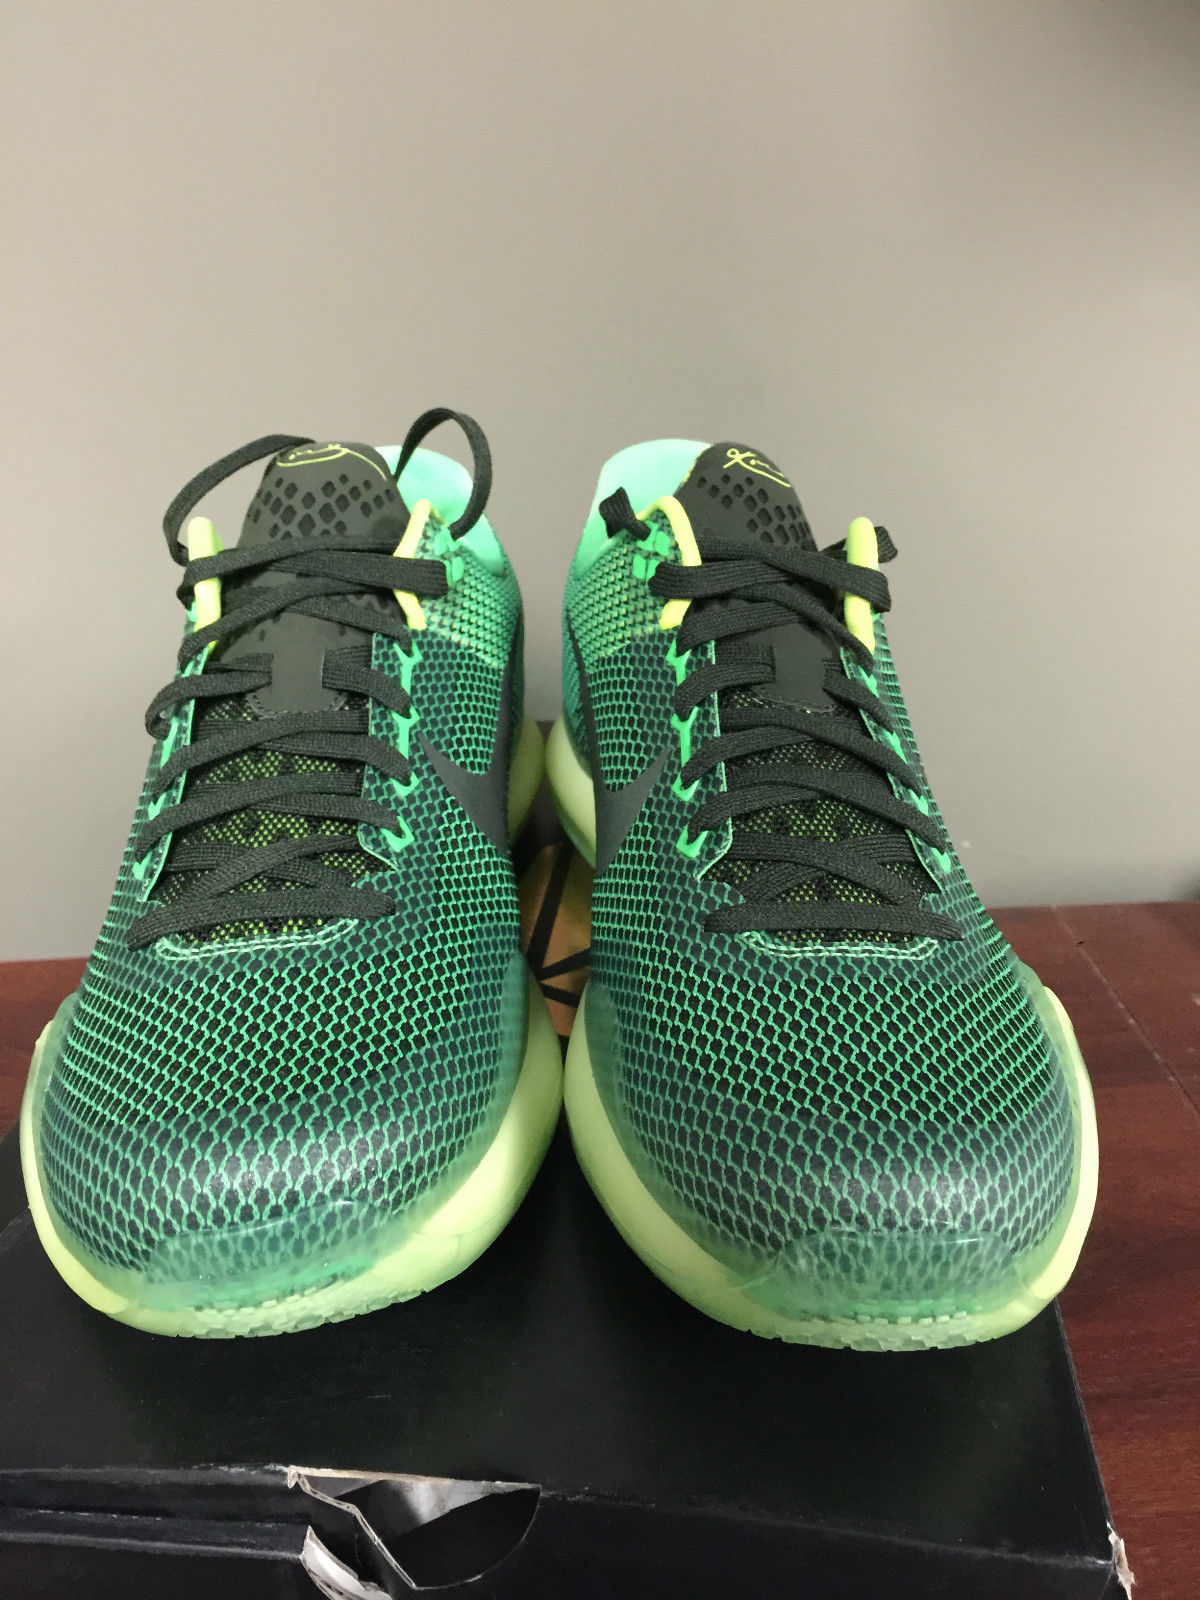 check out 3ff09 34c5c ... Nike Kobe X Vino - Available Now 3 ...